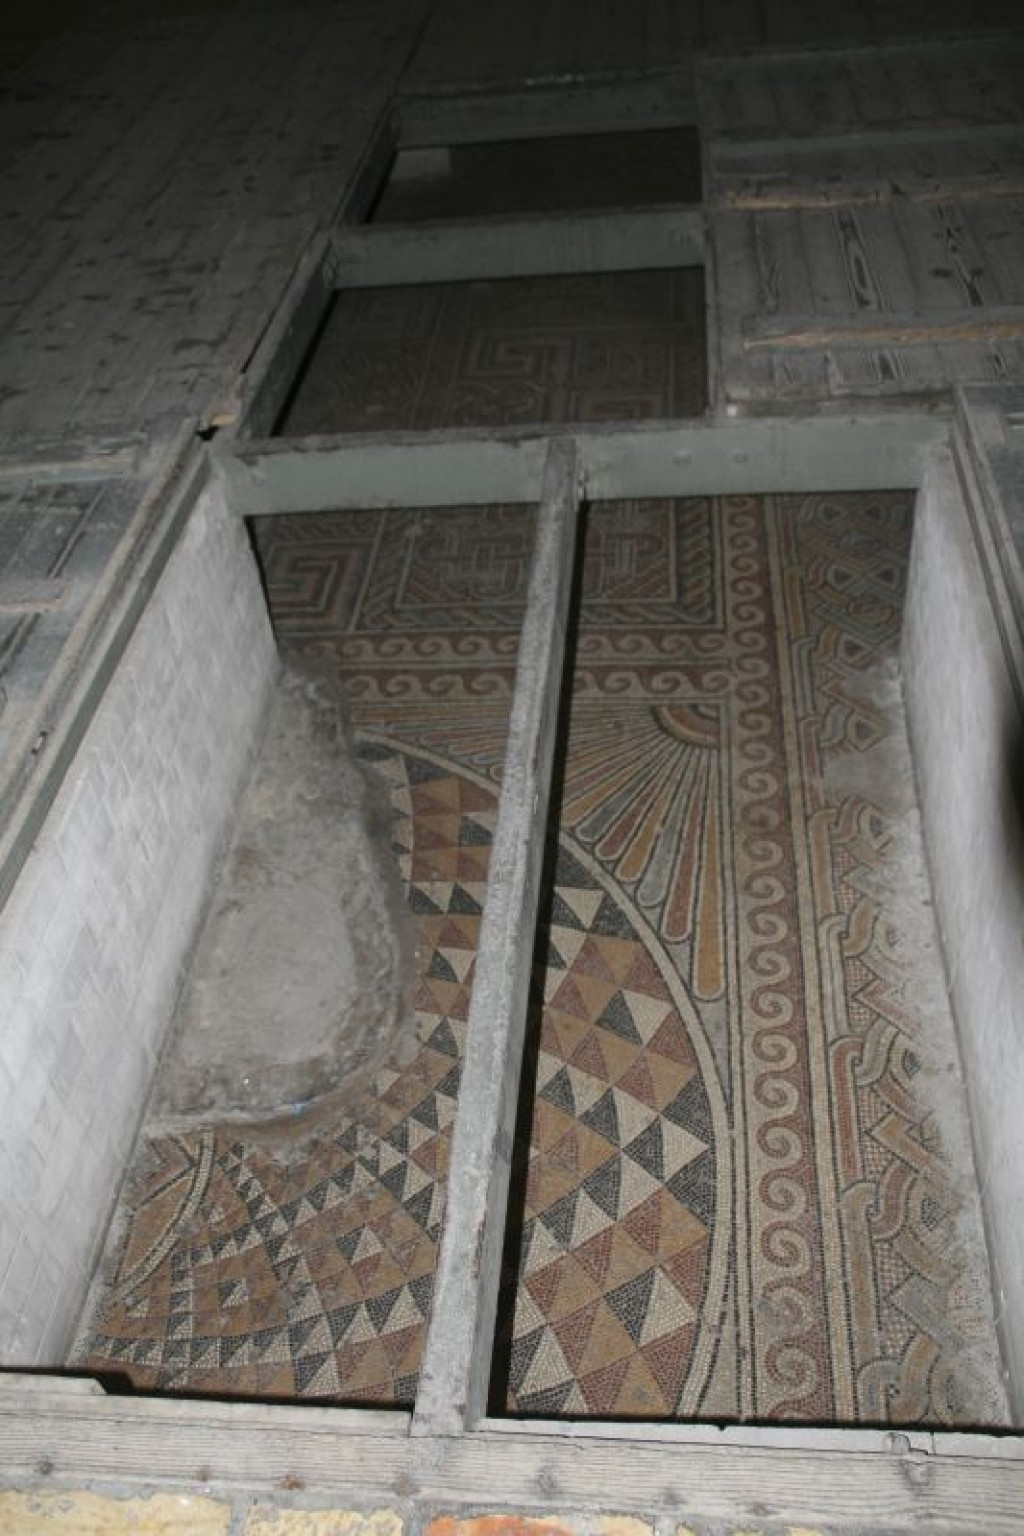 Constantine's 4th century mosaic floor rediscovered in 1934 in the Church of the Nativity (Basilica of the Nativity).